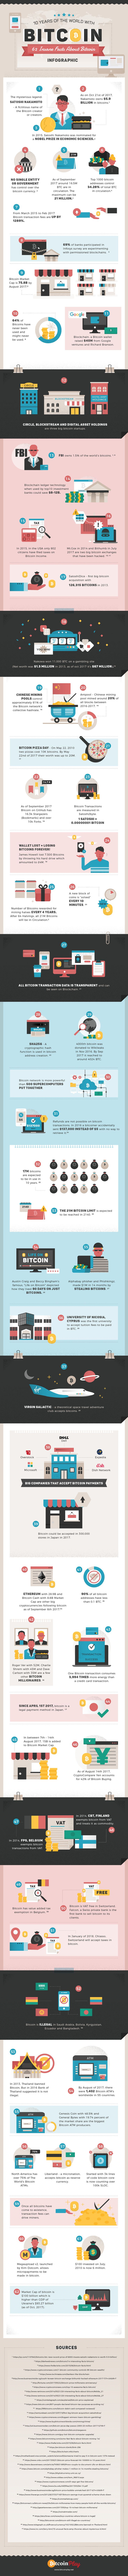 Bitcoin is a virtual currency that uses Blockchain technology for secure payments and storing money electronically, without requiring a bank or a person's name. Satoshi Nakamoto created this cryptocurrency back in 2009. The biggest advantage of Bitcoin is that it's not under control of central authority, government or private company, so people are free from Read More